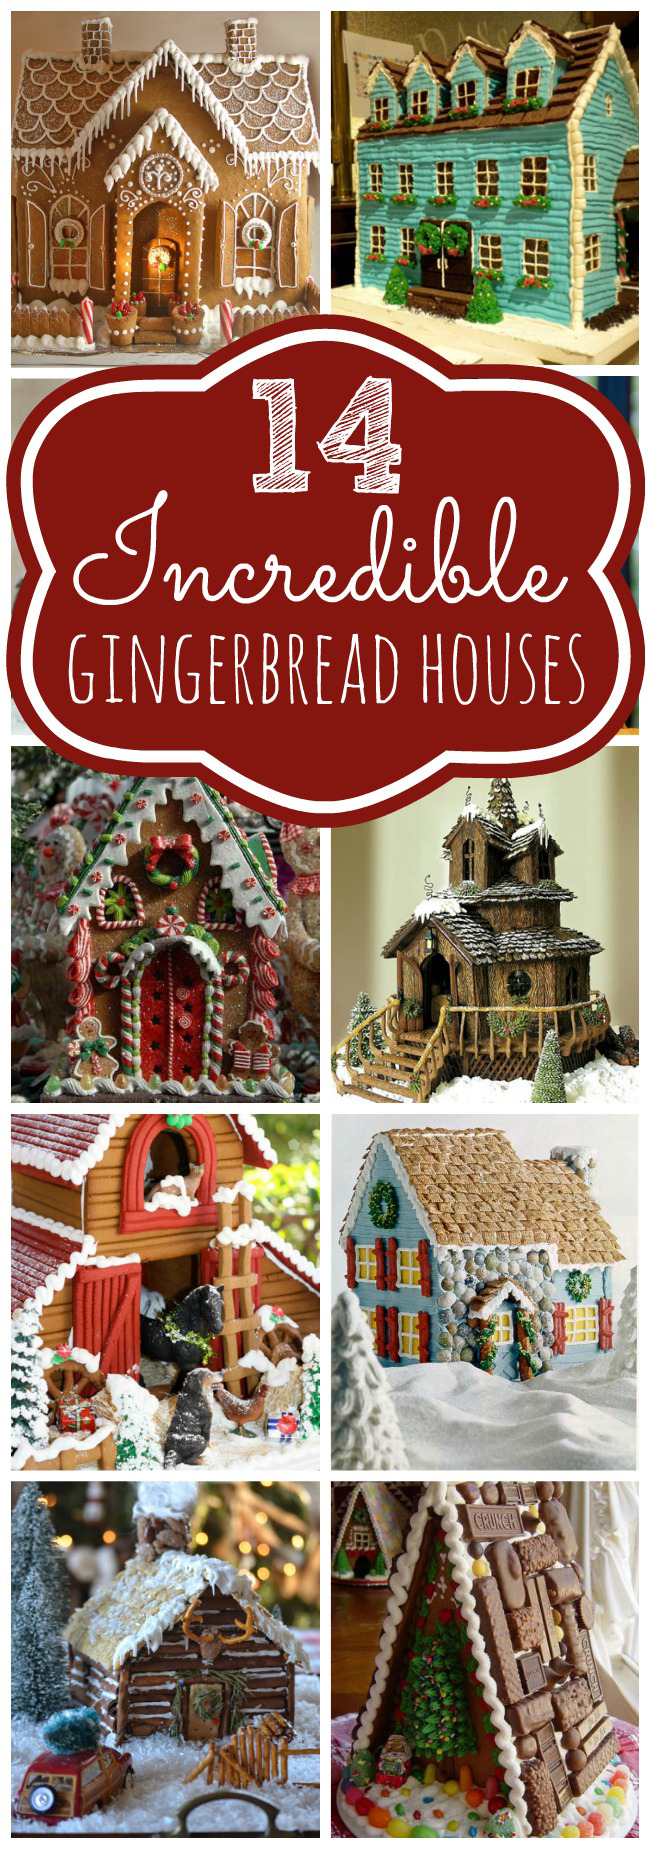 14 Incredible Gingerbread Houses